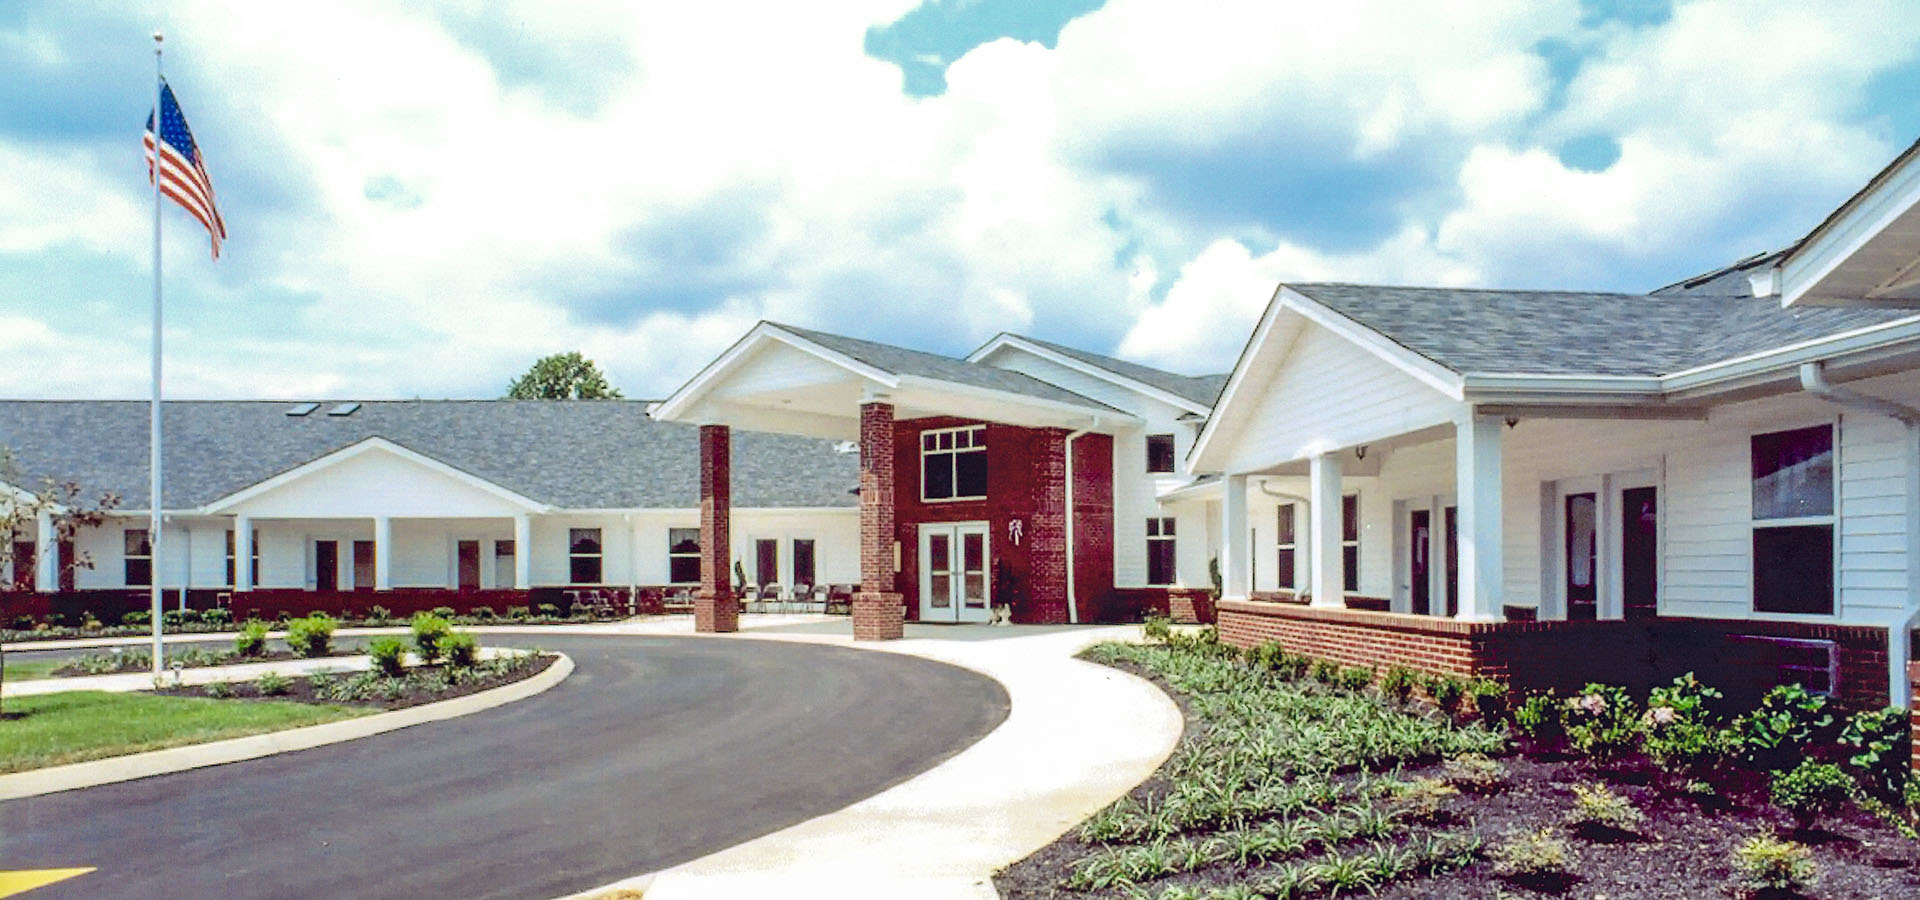 Wayne County Assisted Living | Waynesboro, Tennessee | Brindley Construction, LLC.